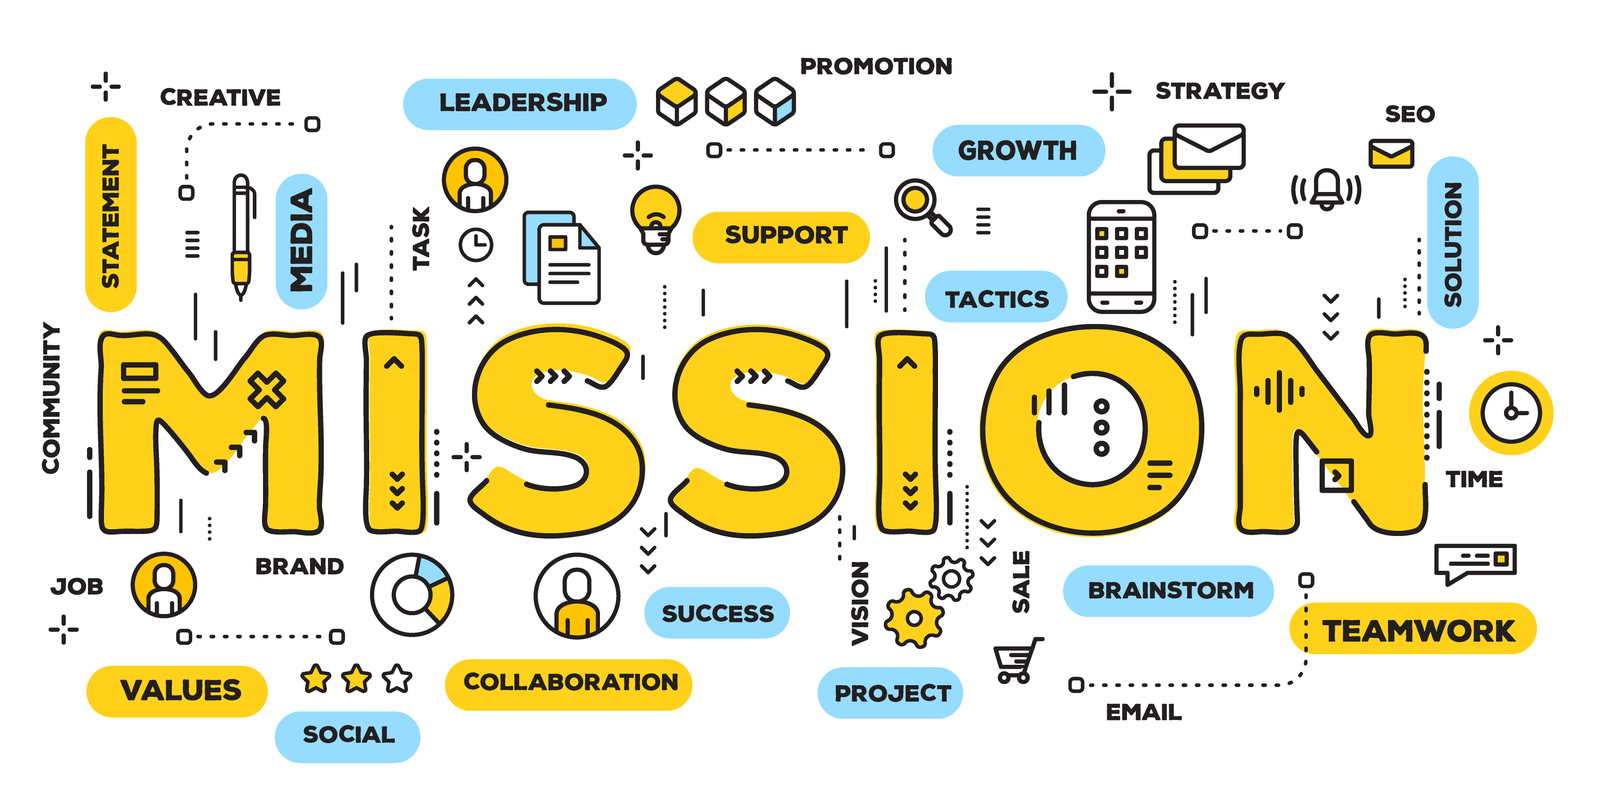 Mission | Building A Social Media Marketing Plan That Works